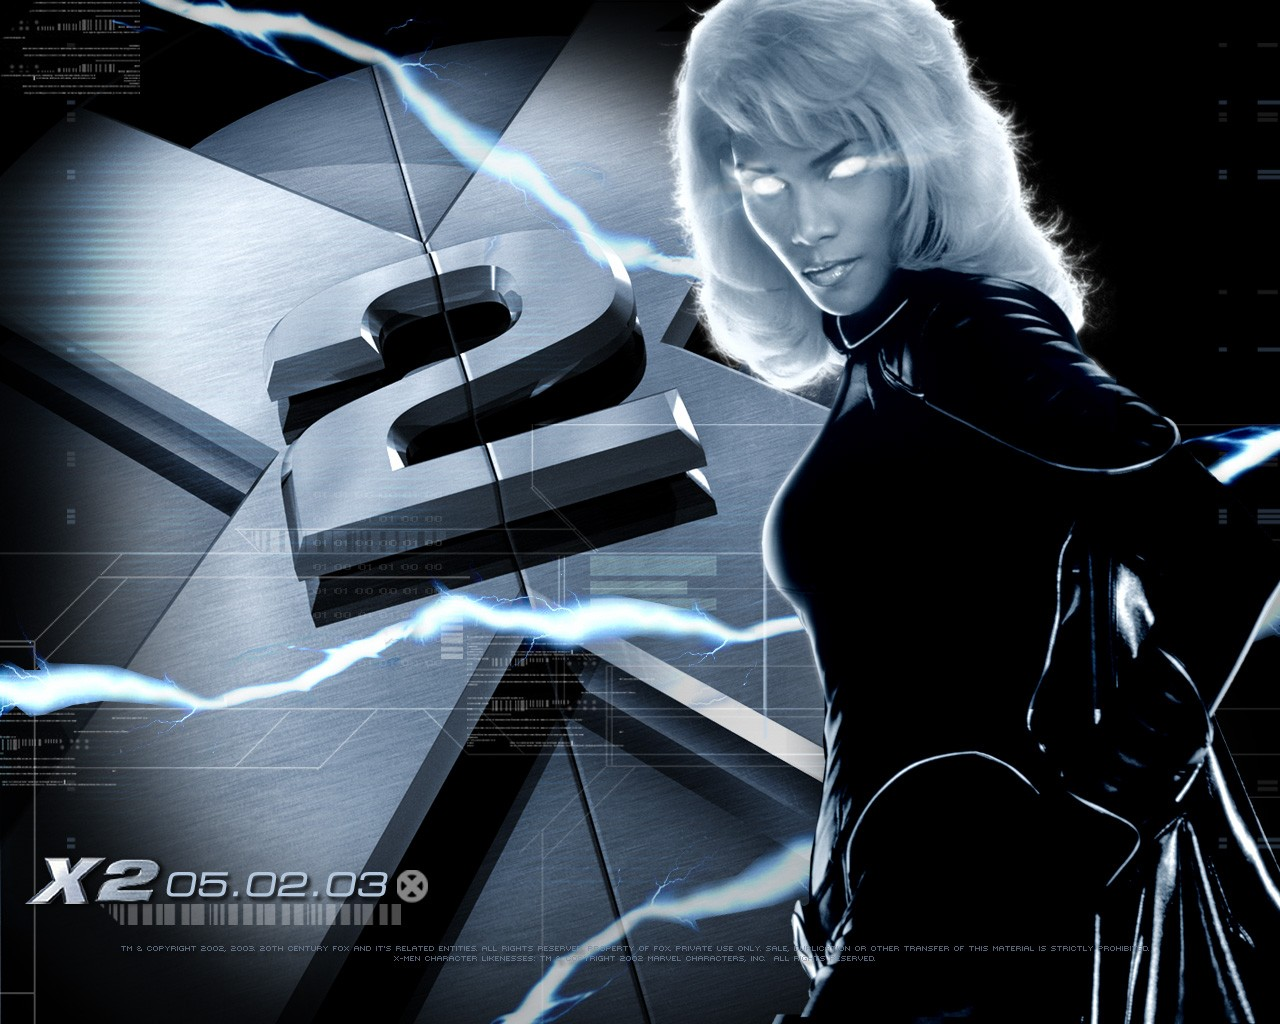 X-men 2: wallpaper con Halle Berry